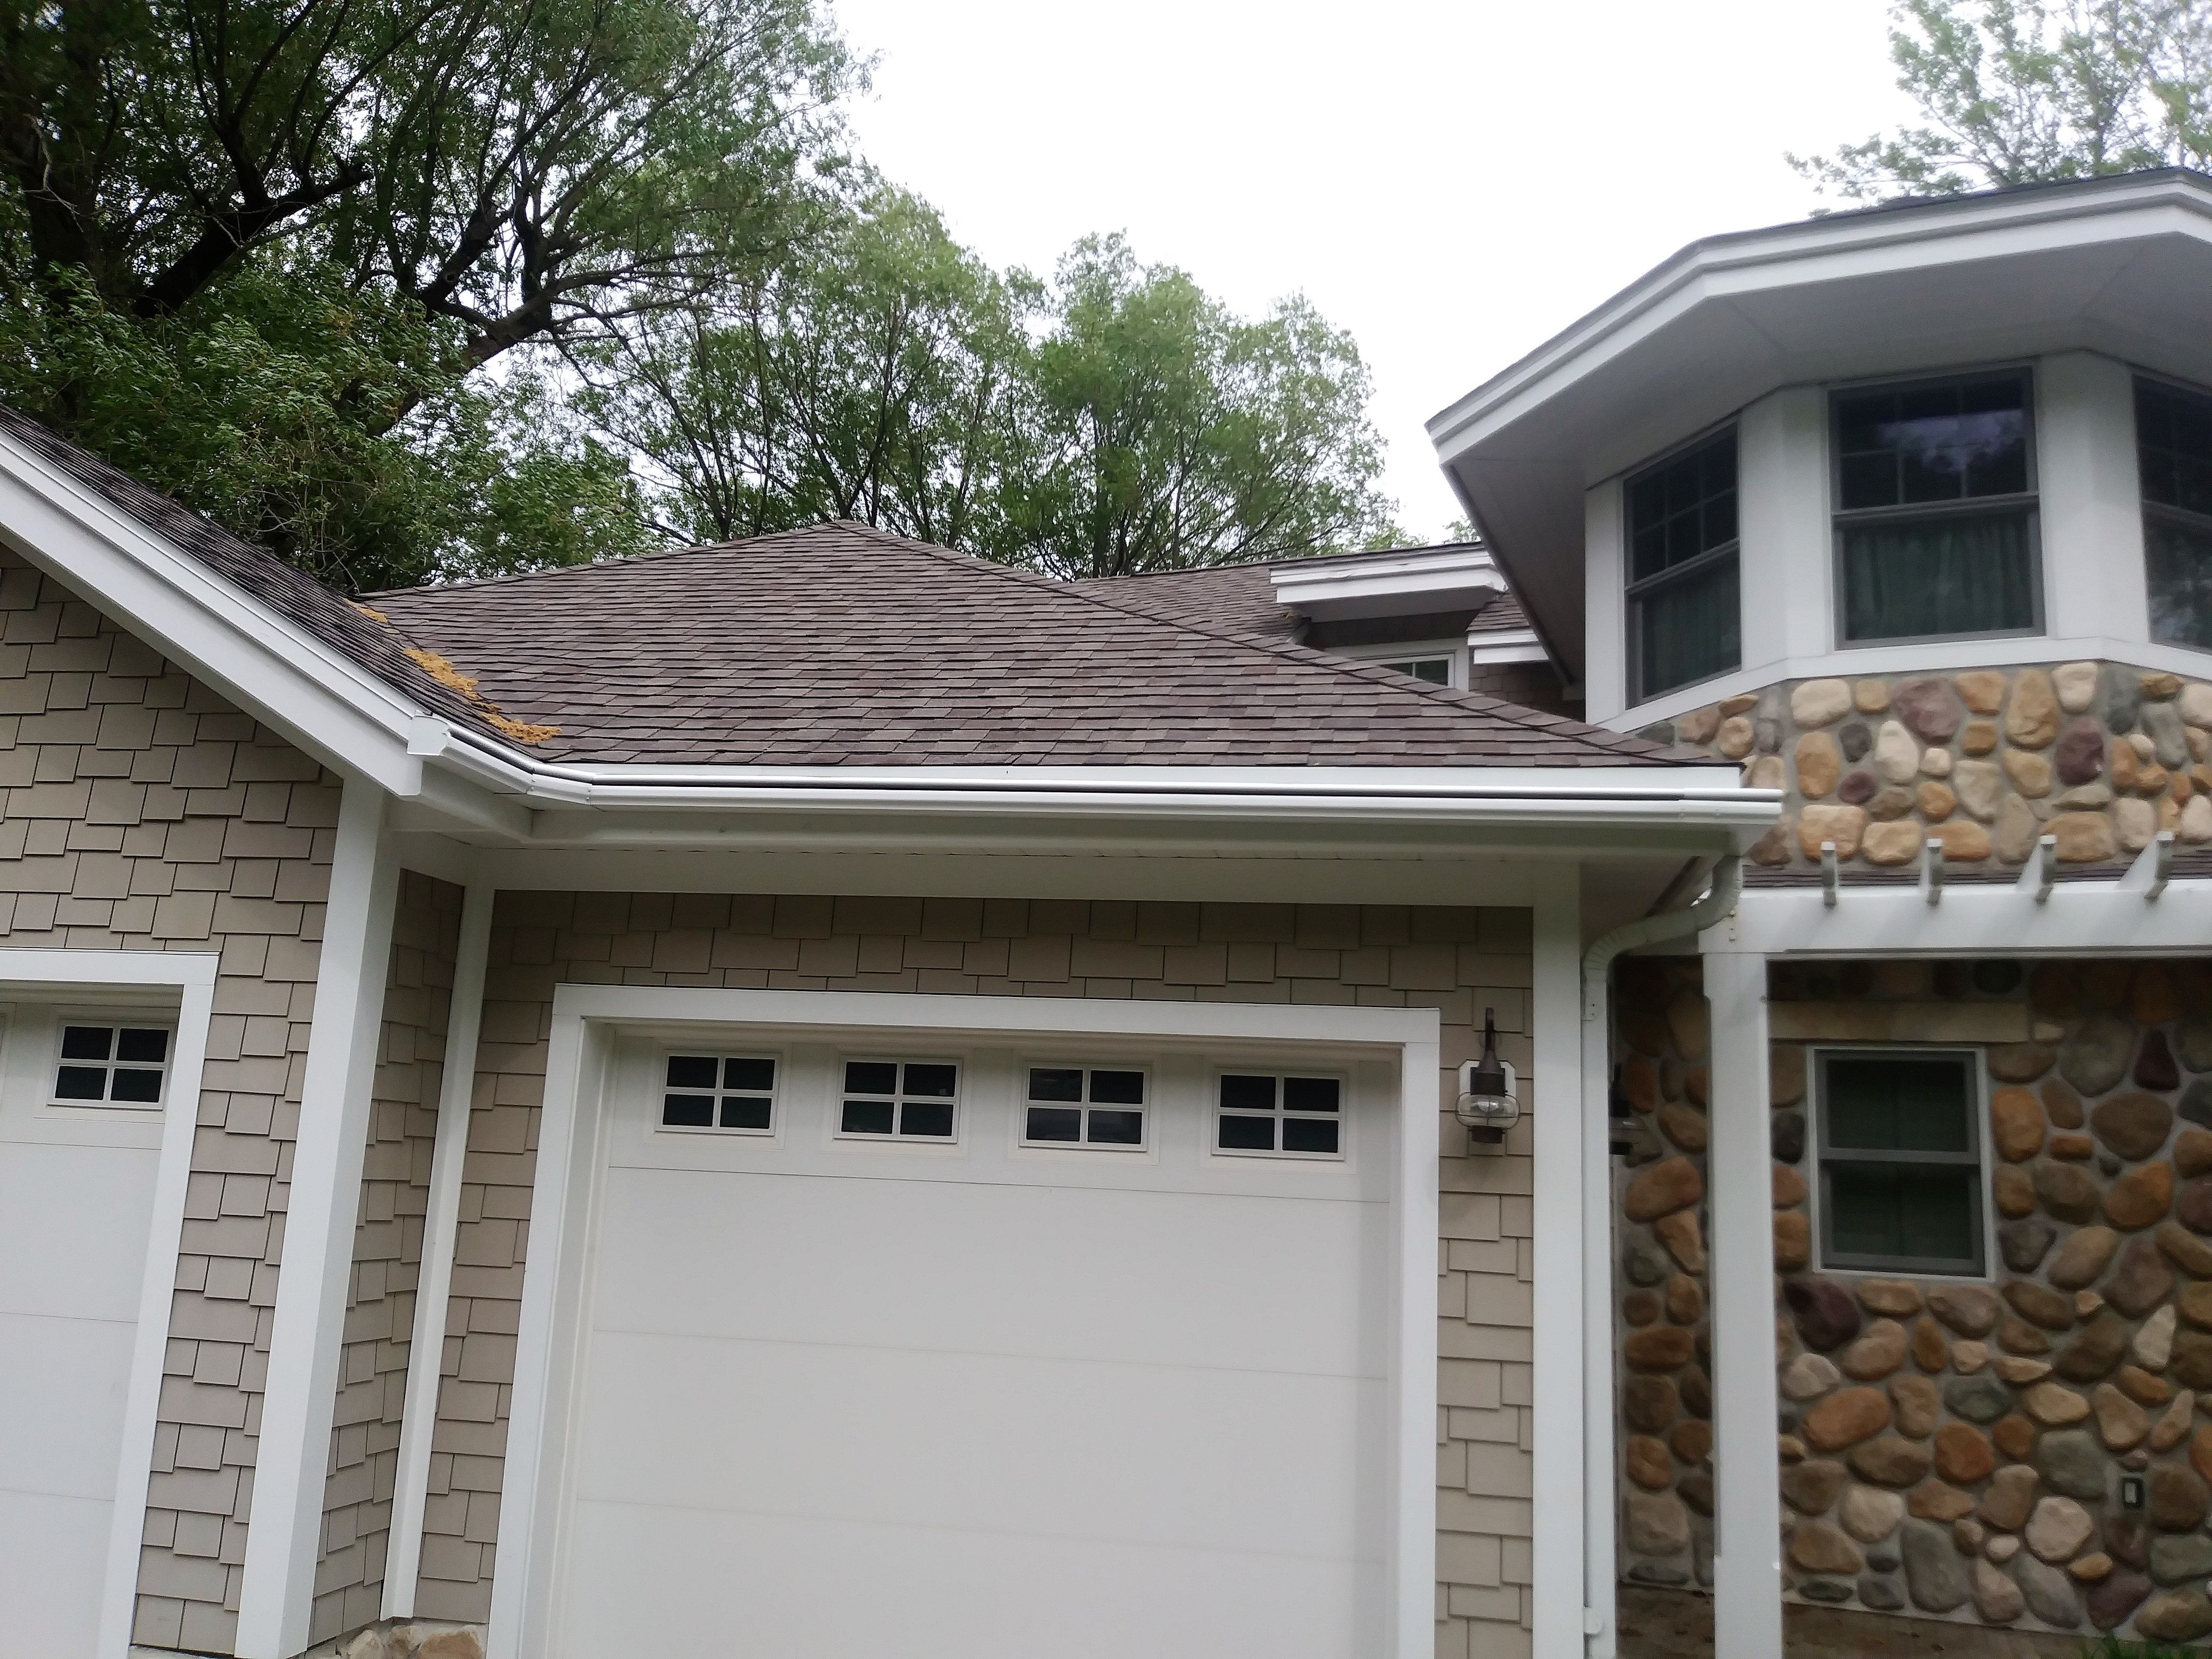 Leafguard Gutter Installation On Two Story Cabin In Detroit Lakes Mn How To Install Gutters Seamless Gutters Curb Appeal